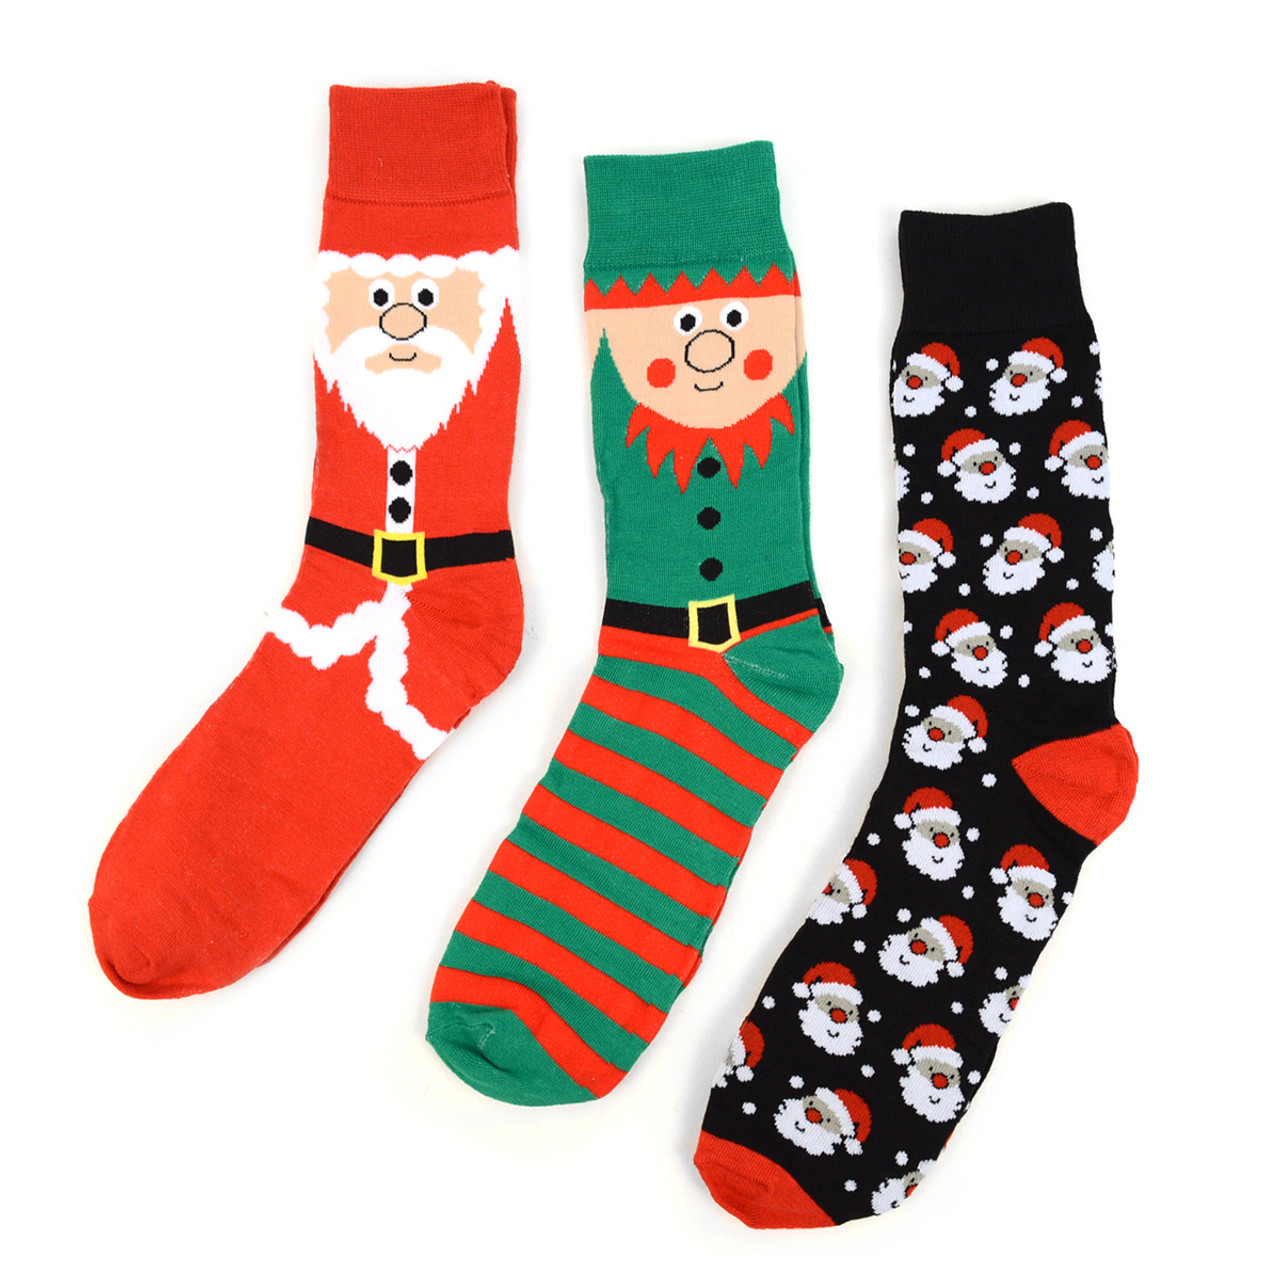 Mens Christmas Socks.24 Boxes 72pairs Assorted Men S Christmas Socks Red Gift Box Set 3 Pairs Per Box Mfs2000